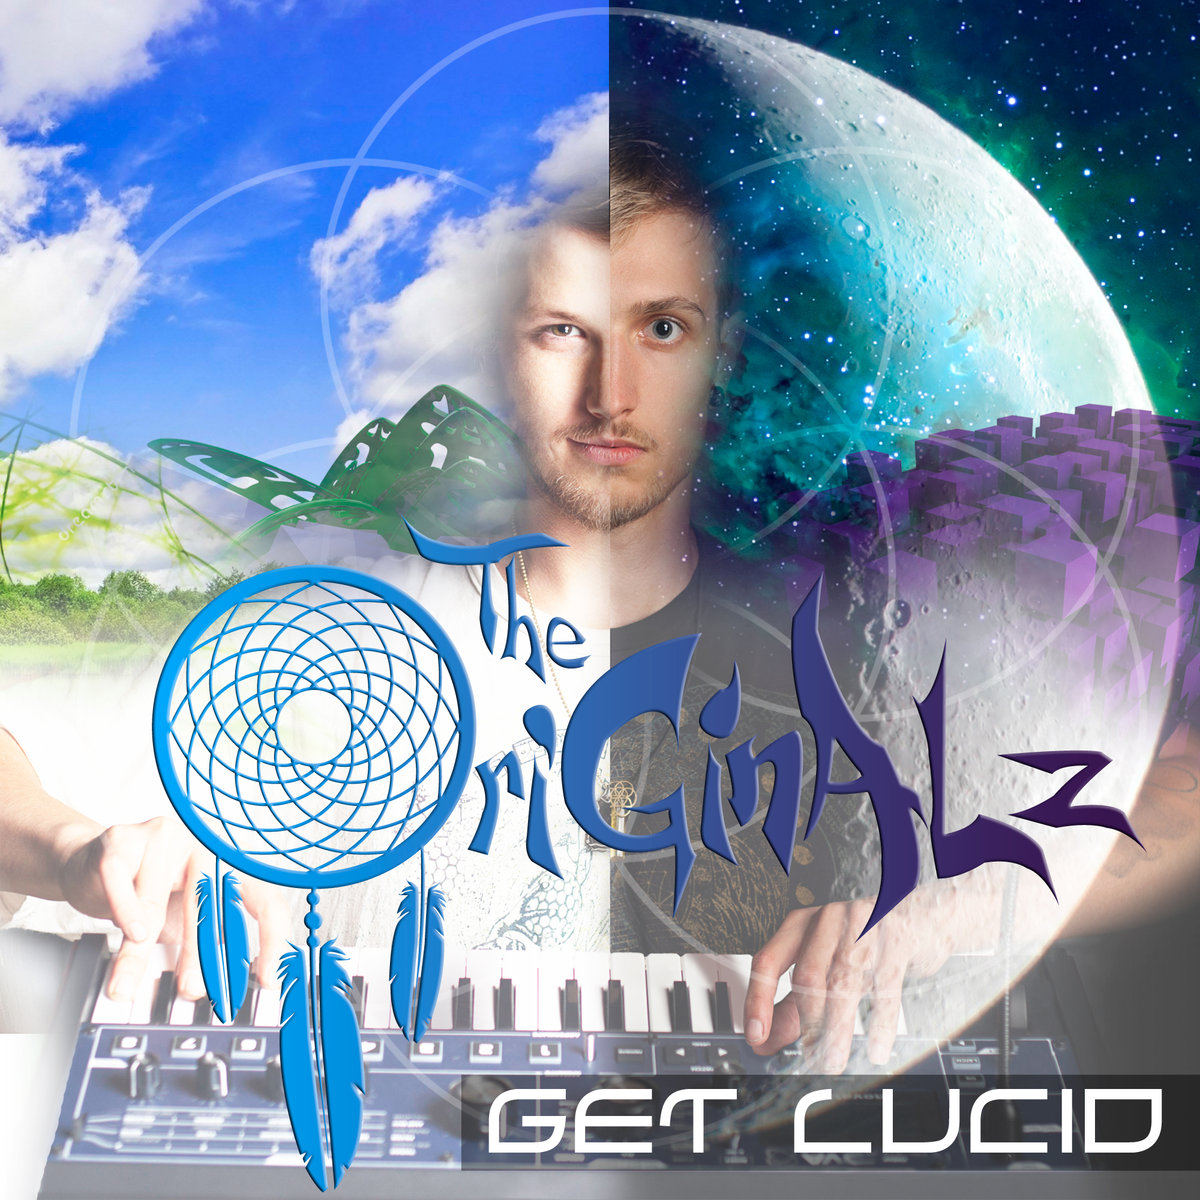 The OriGinALz - Cheez Wiz n' Crackers @ 'Get Lucid' album (Austin)